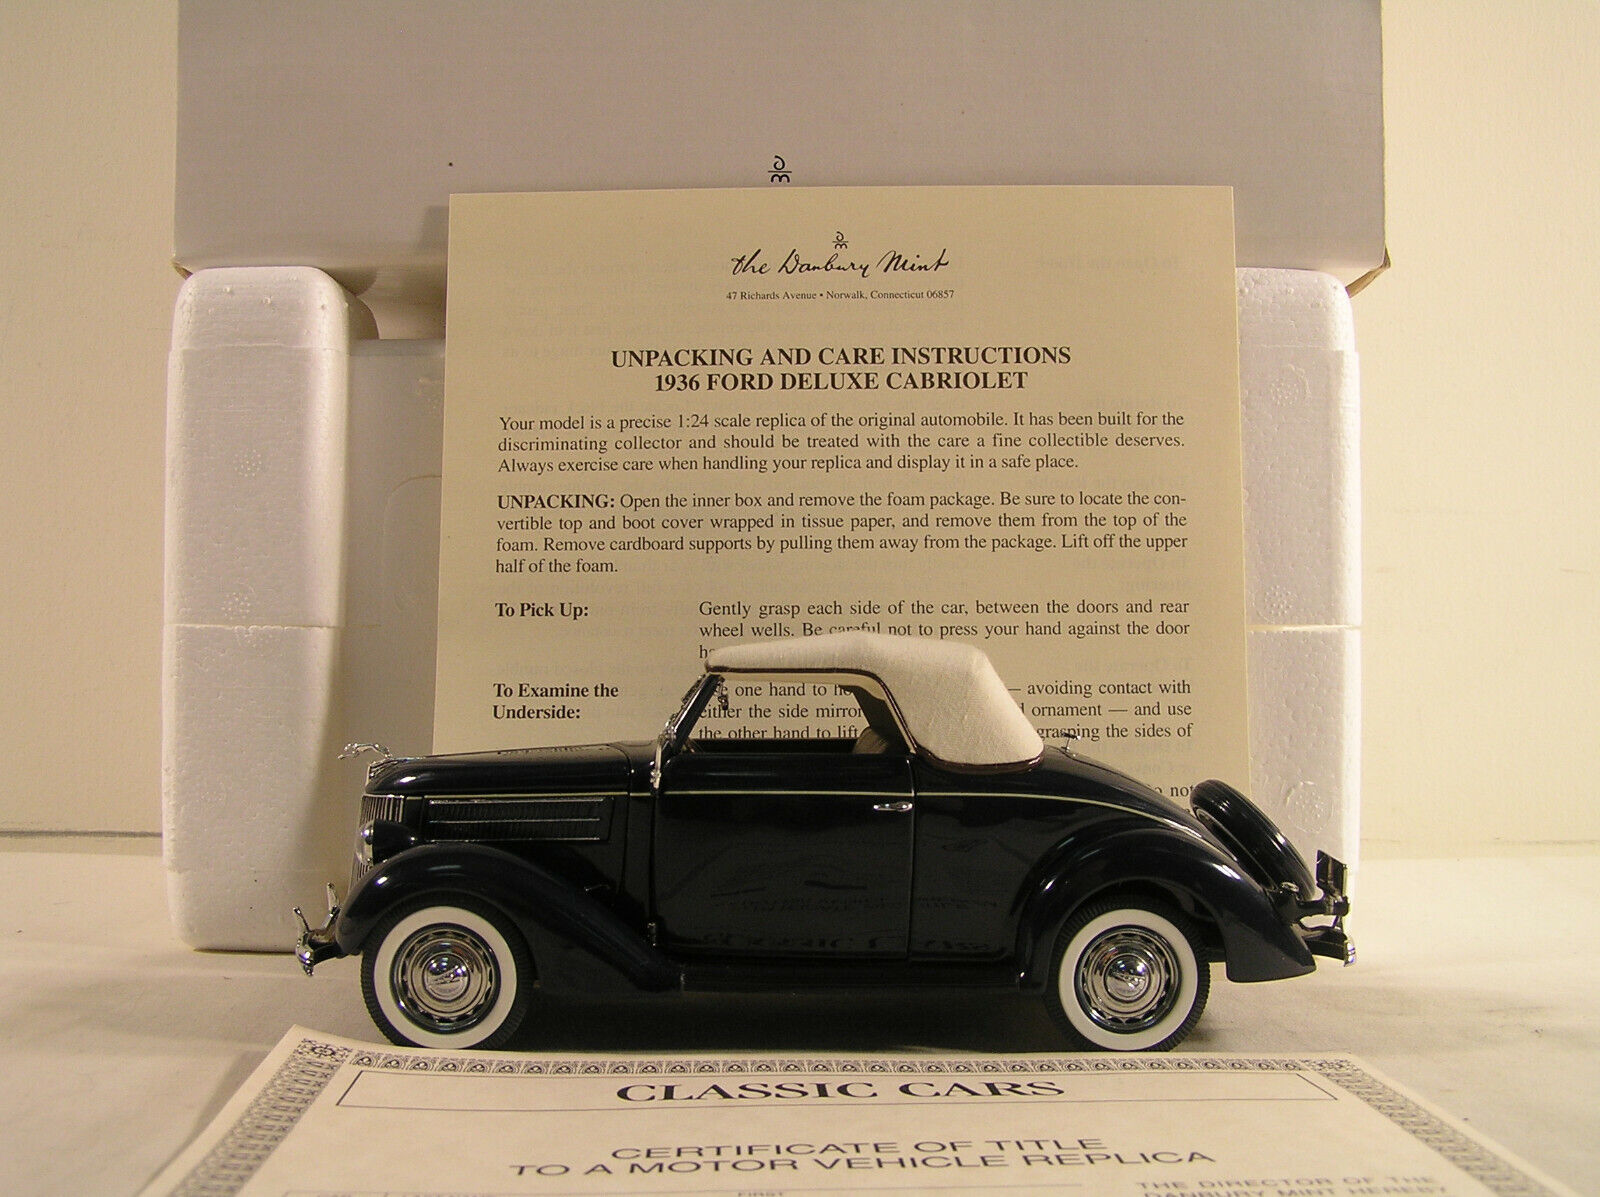 1936 Ford Deluxe Cabriolet by Danbury Mint, 195-039